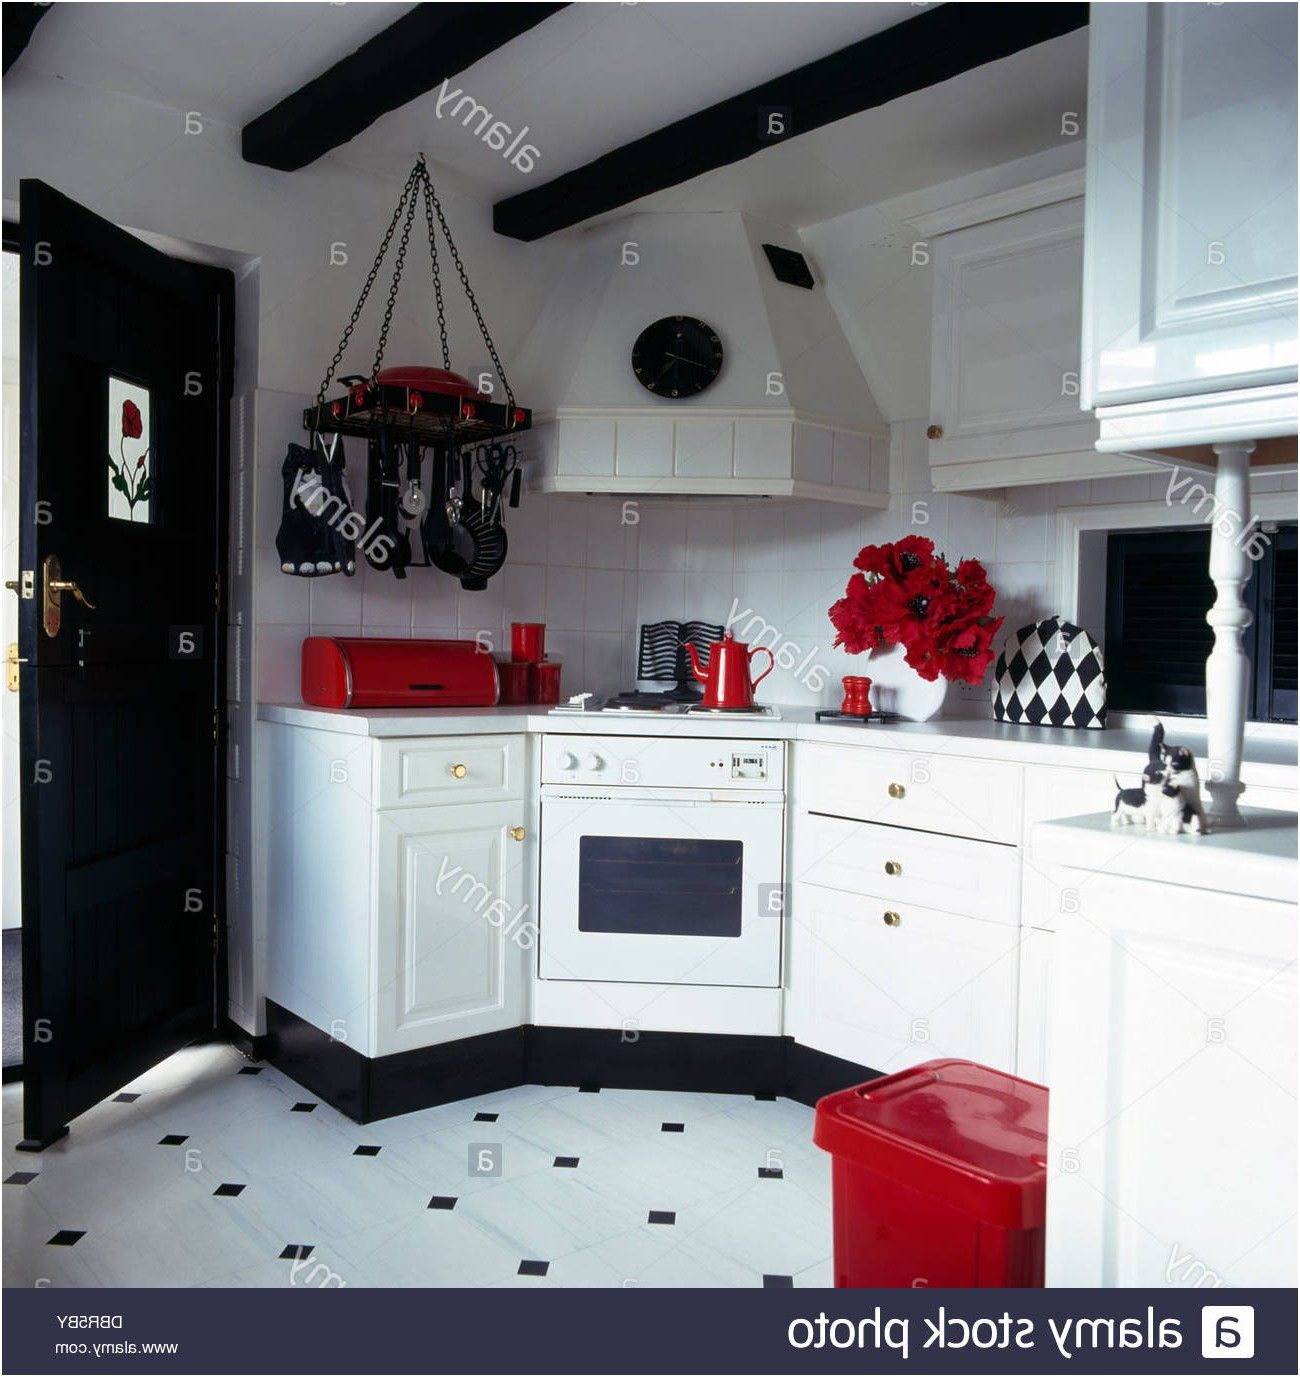 Red Accessories In Black And White Kitchen With Black White Vinyl From Kitchen Red Accessories